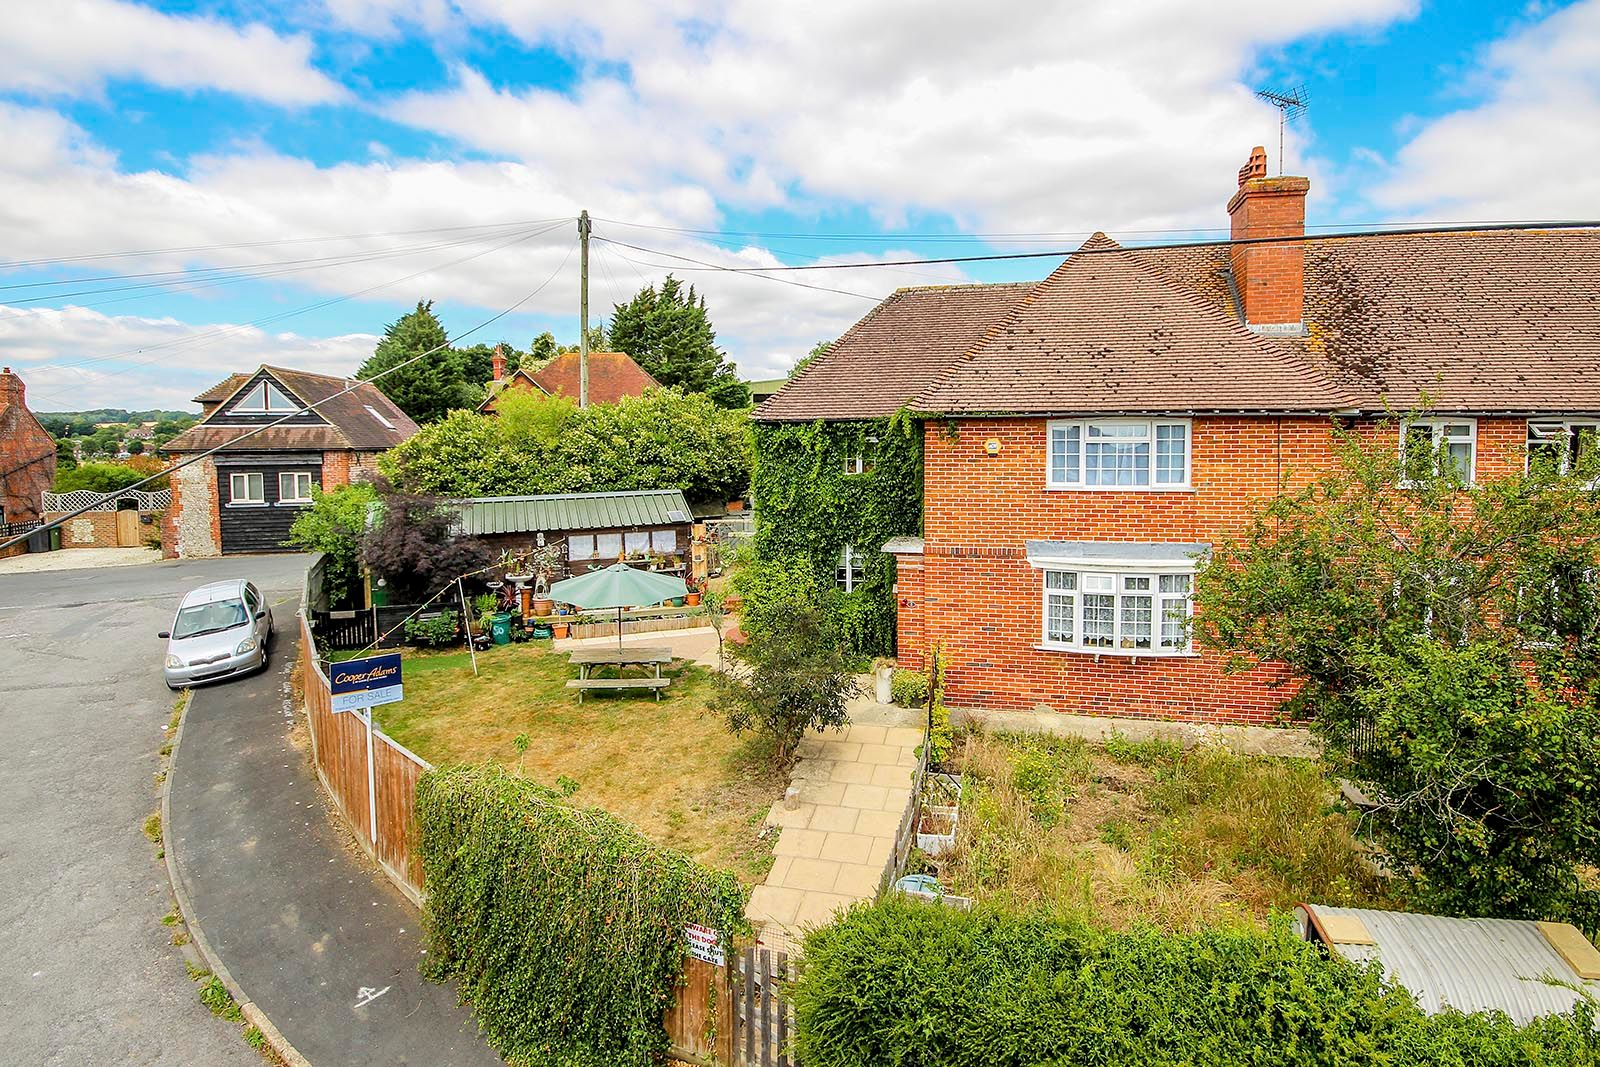 3 bed house for sale in Clapham Common - Property Image 1